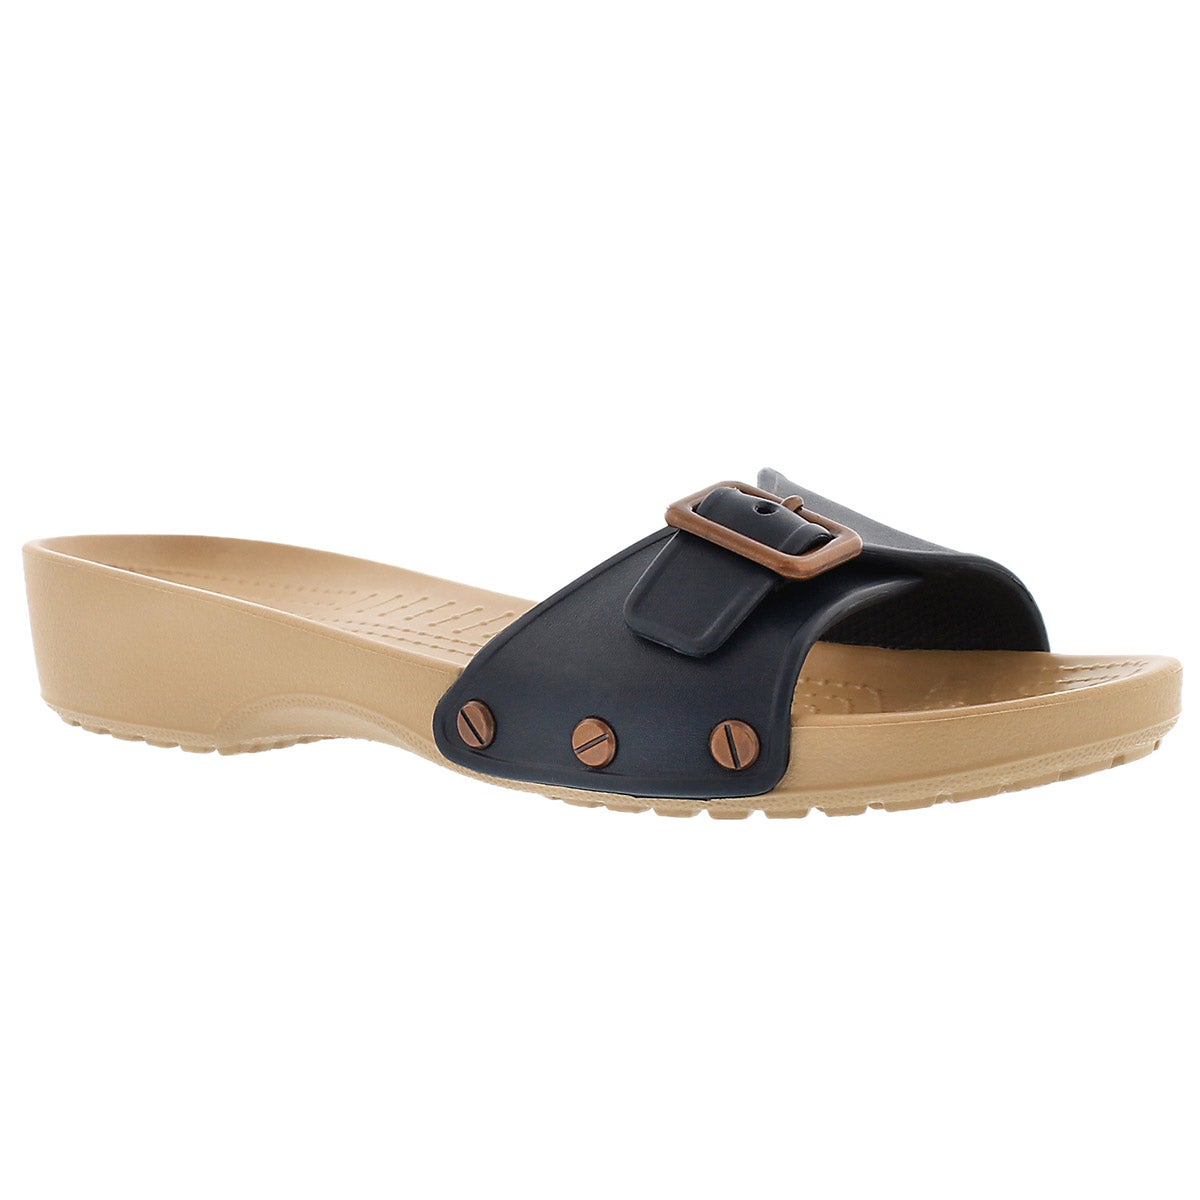 Lds Sarah navy adjusable casual sandal